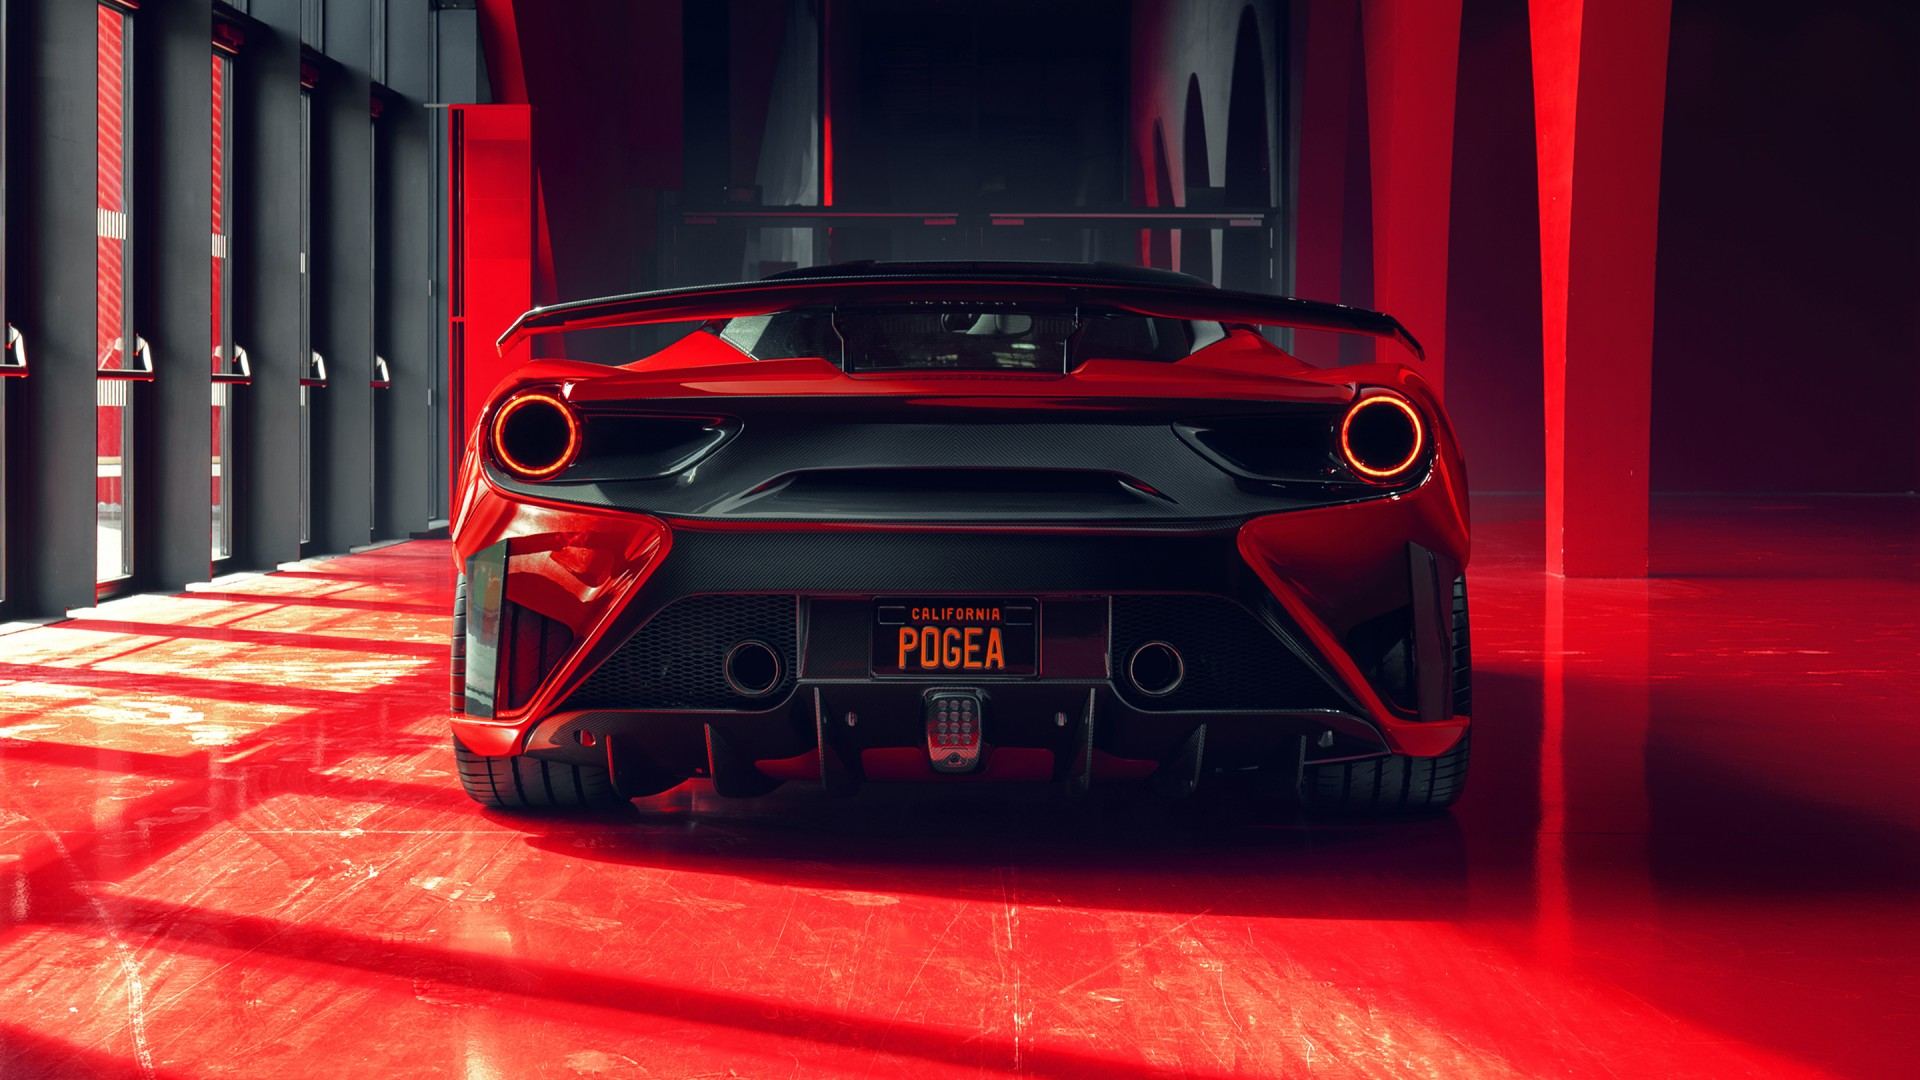 Download Car Wallpapers For Android 2018 Pogea Racing Fplus Corsa Ferrari 488 Gtb 2 Wallpaper